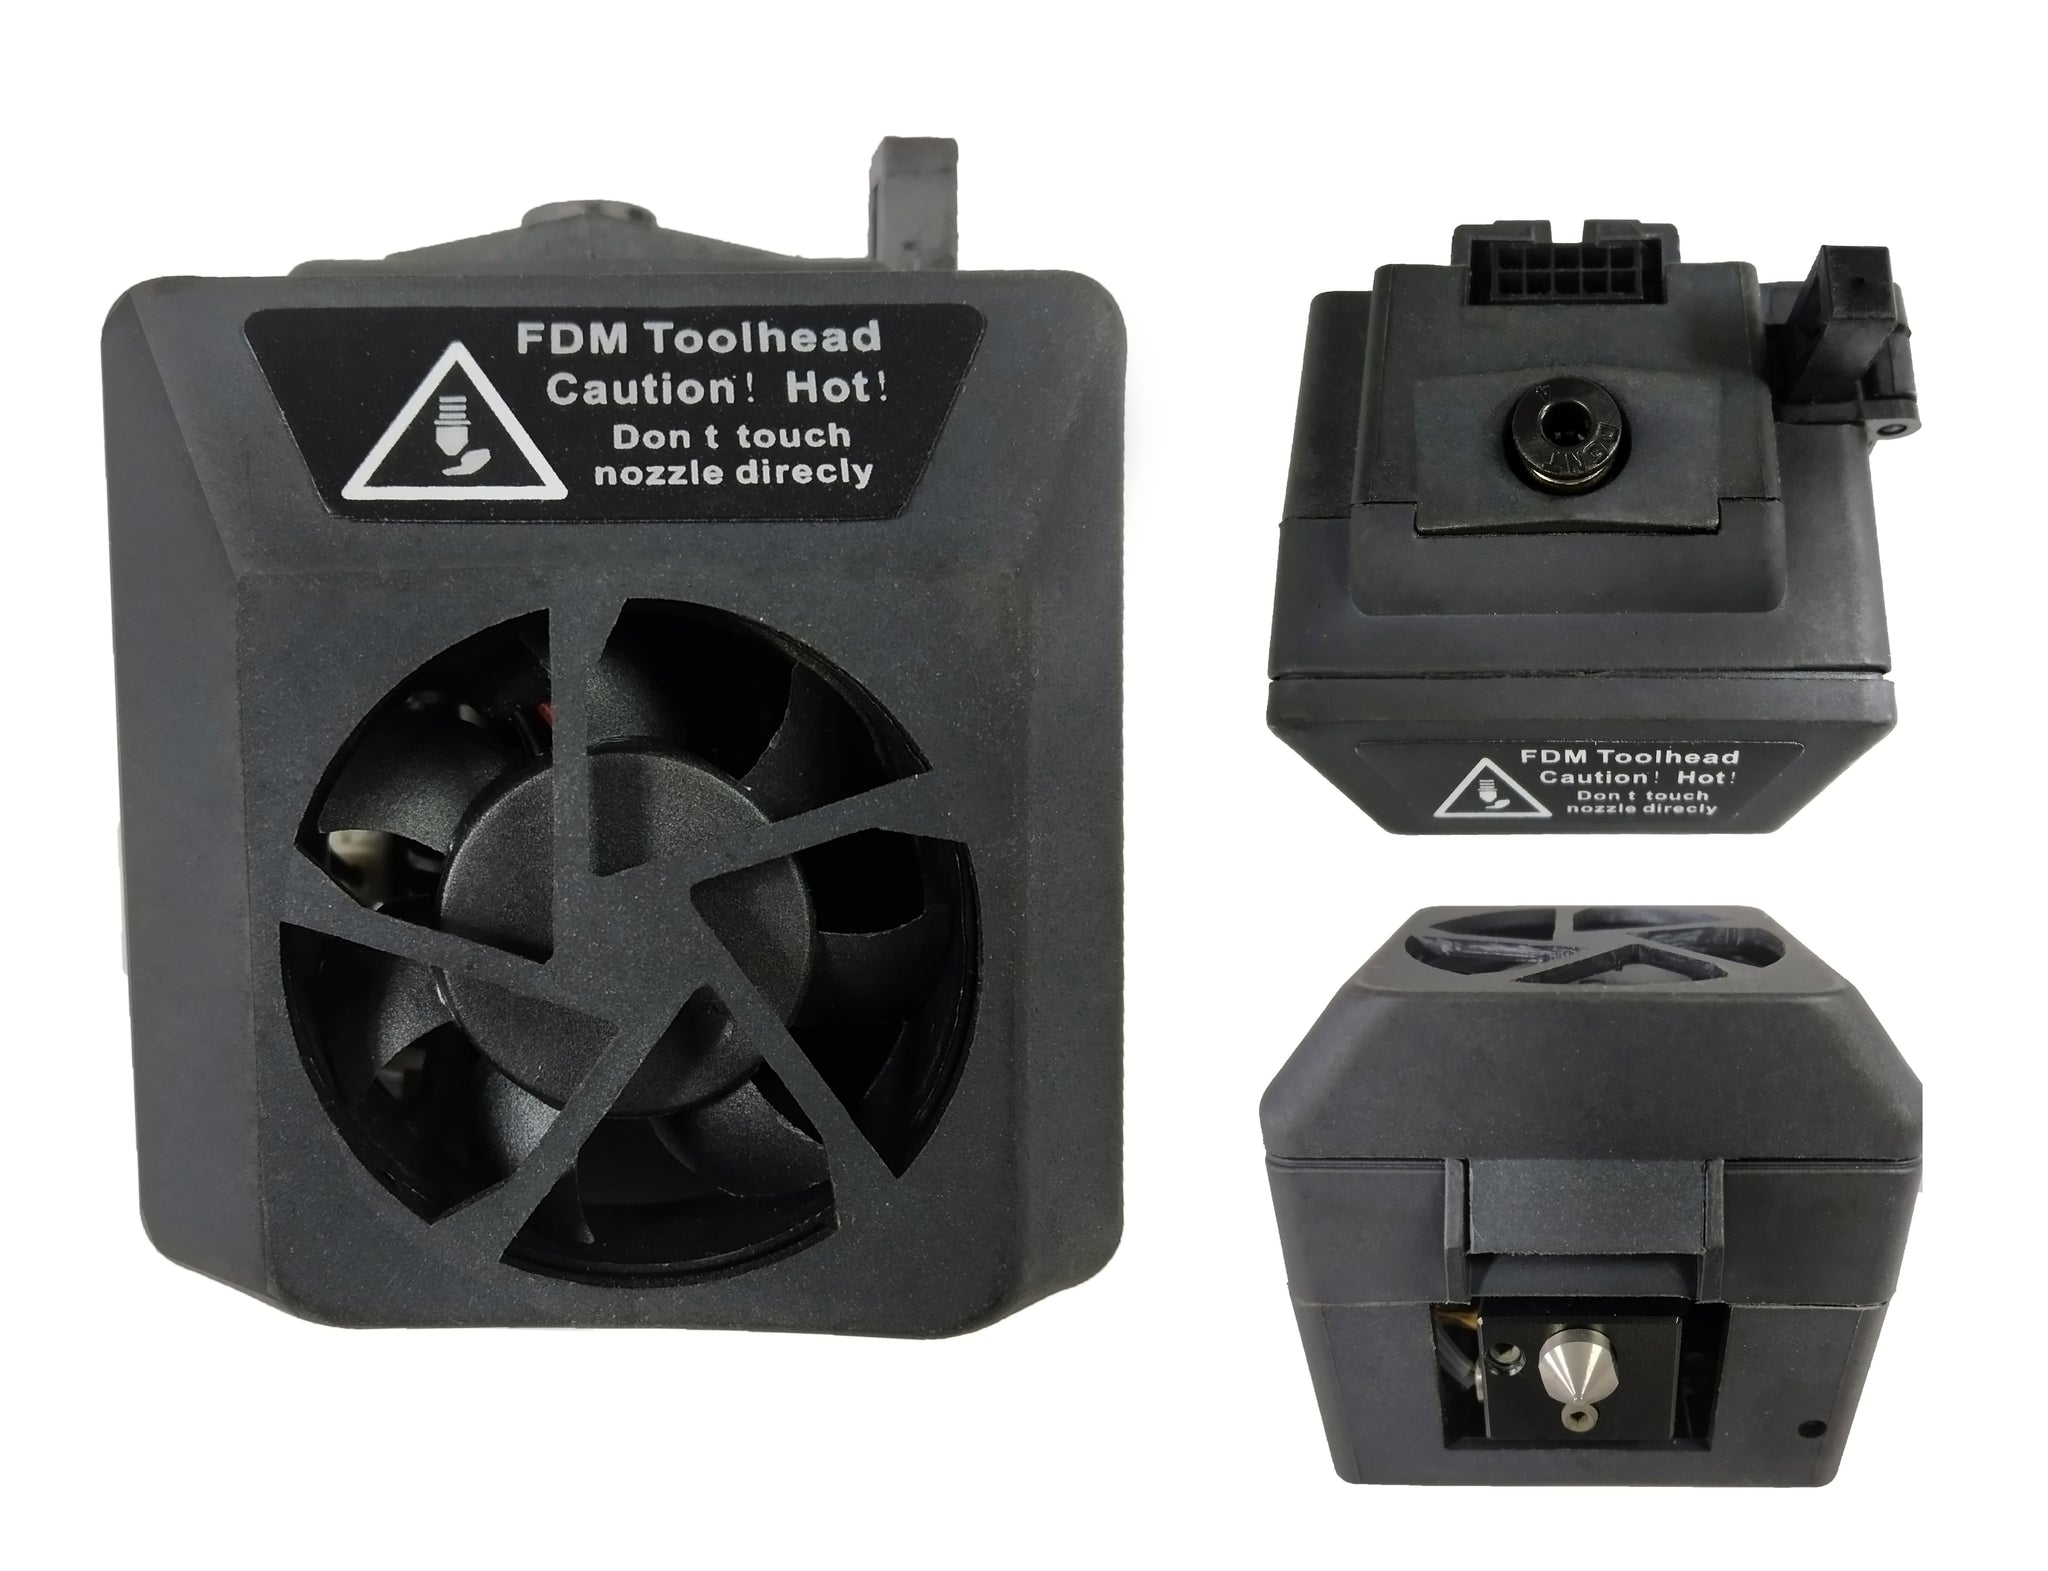 FDM-single Color Toolhead for TOYDIY 4in1